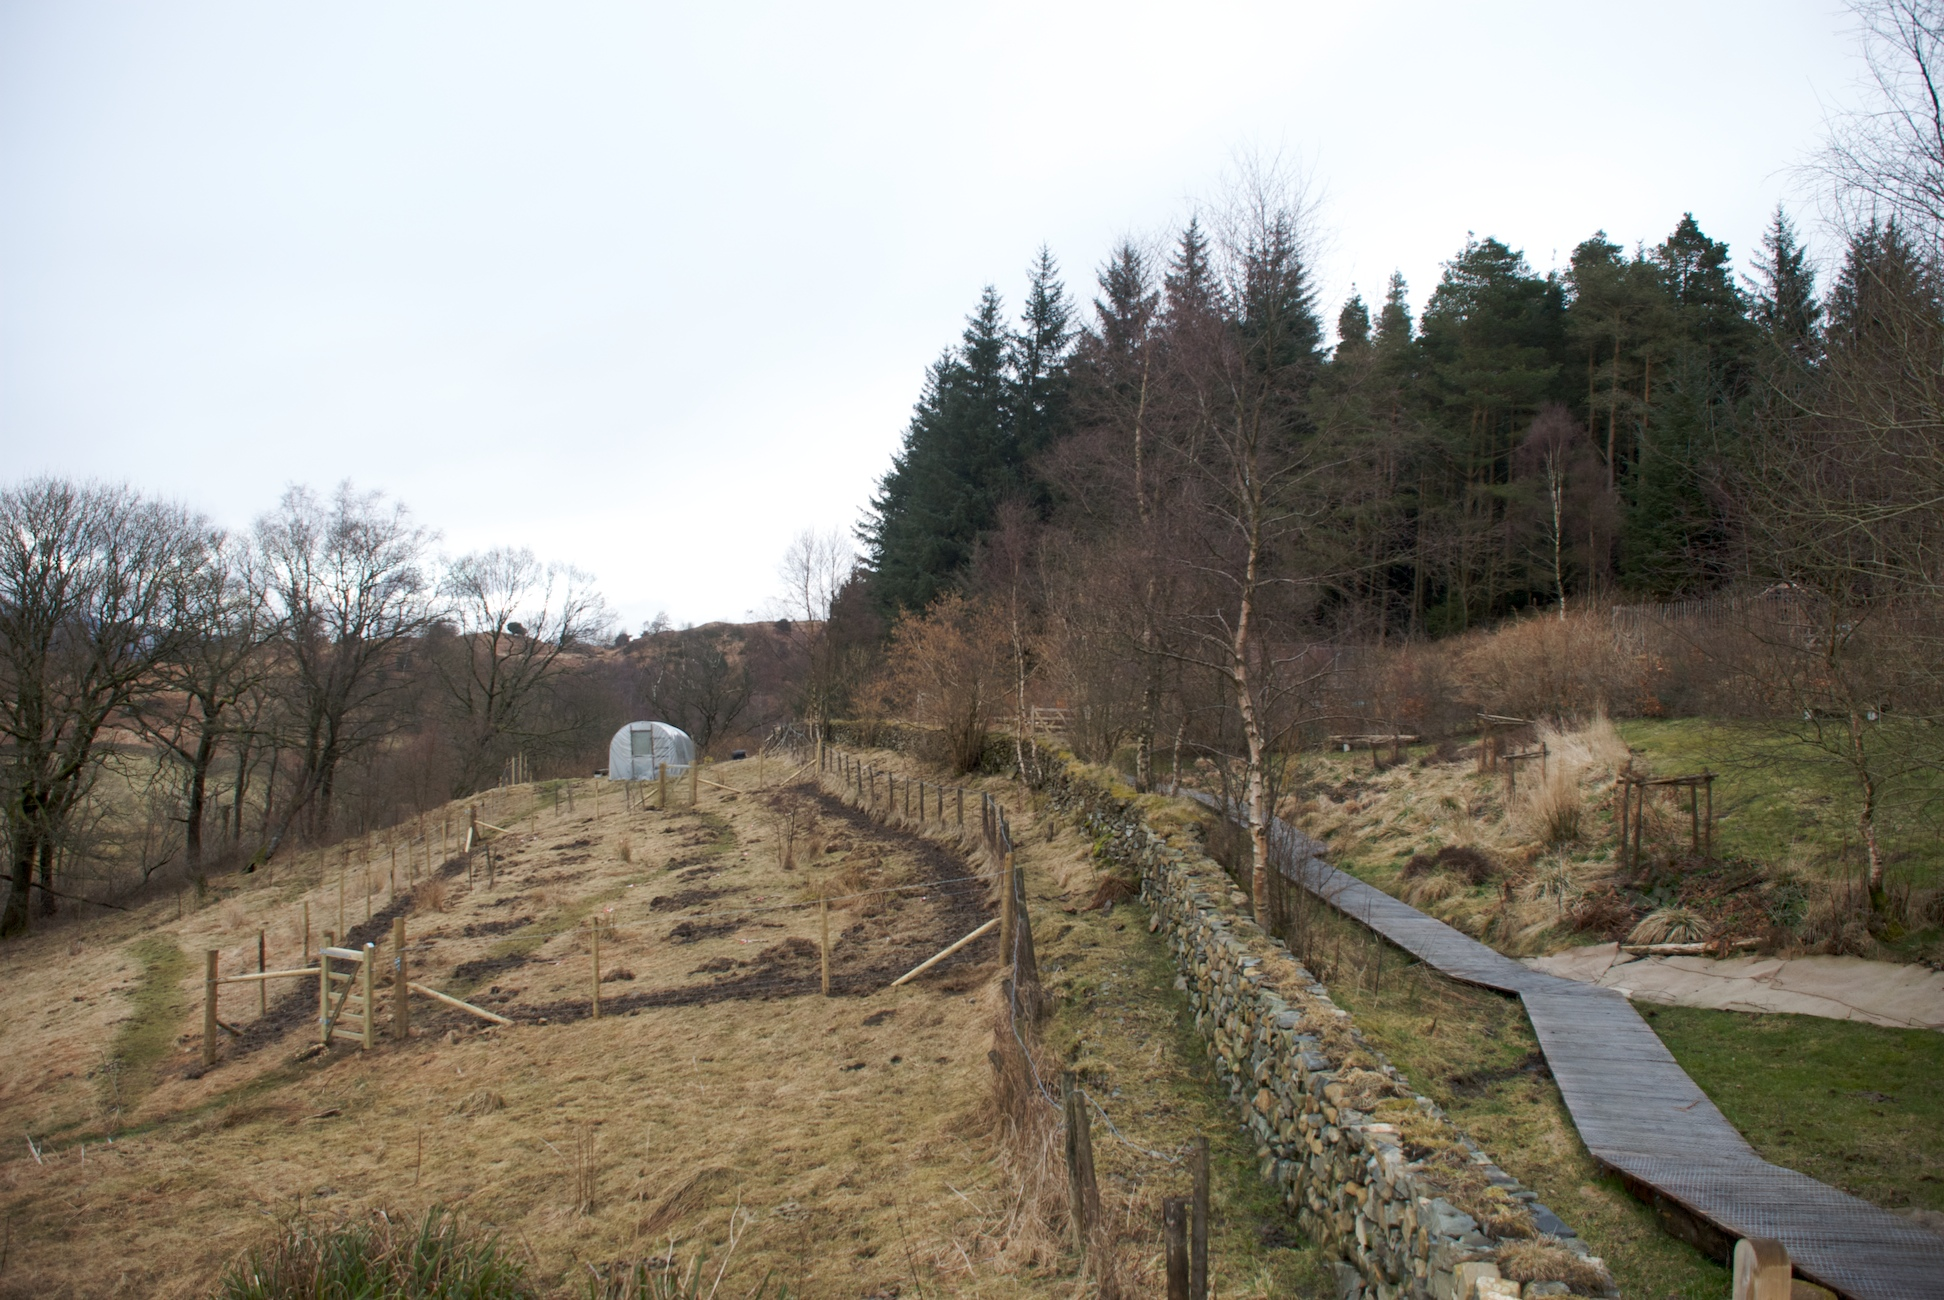 Looking east from the farmhouse, new 'orchard' on left